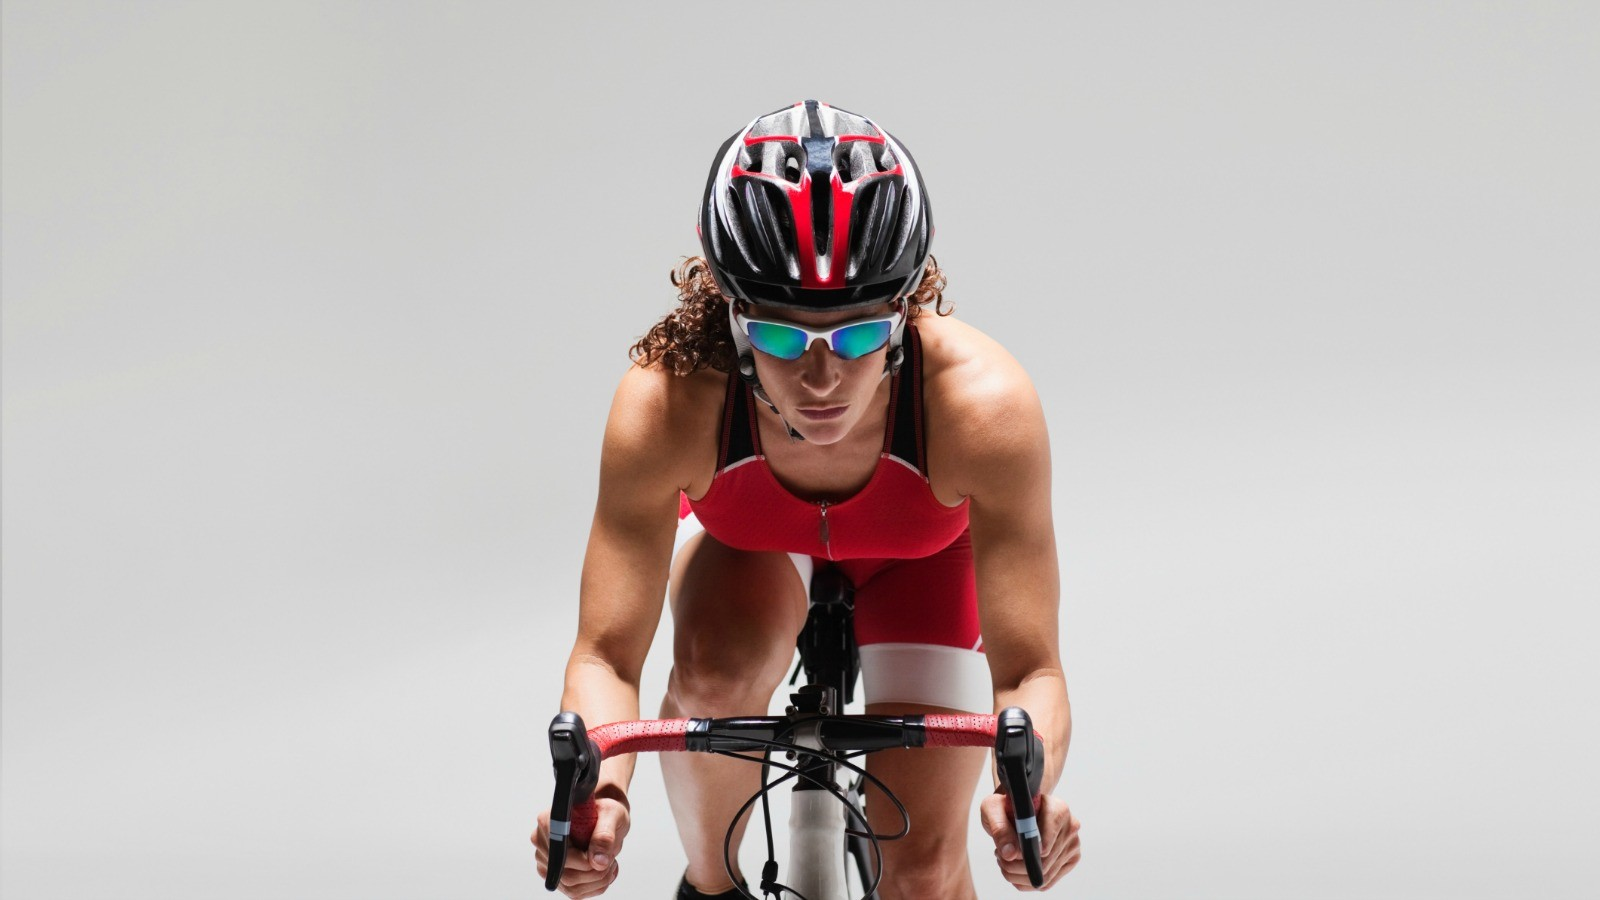 Intensity is key to effective training